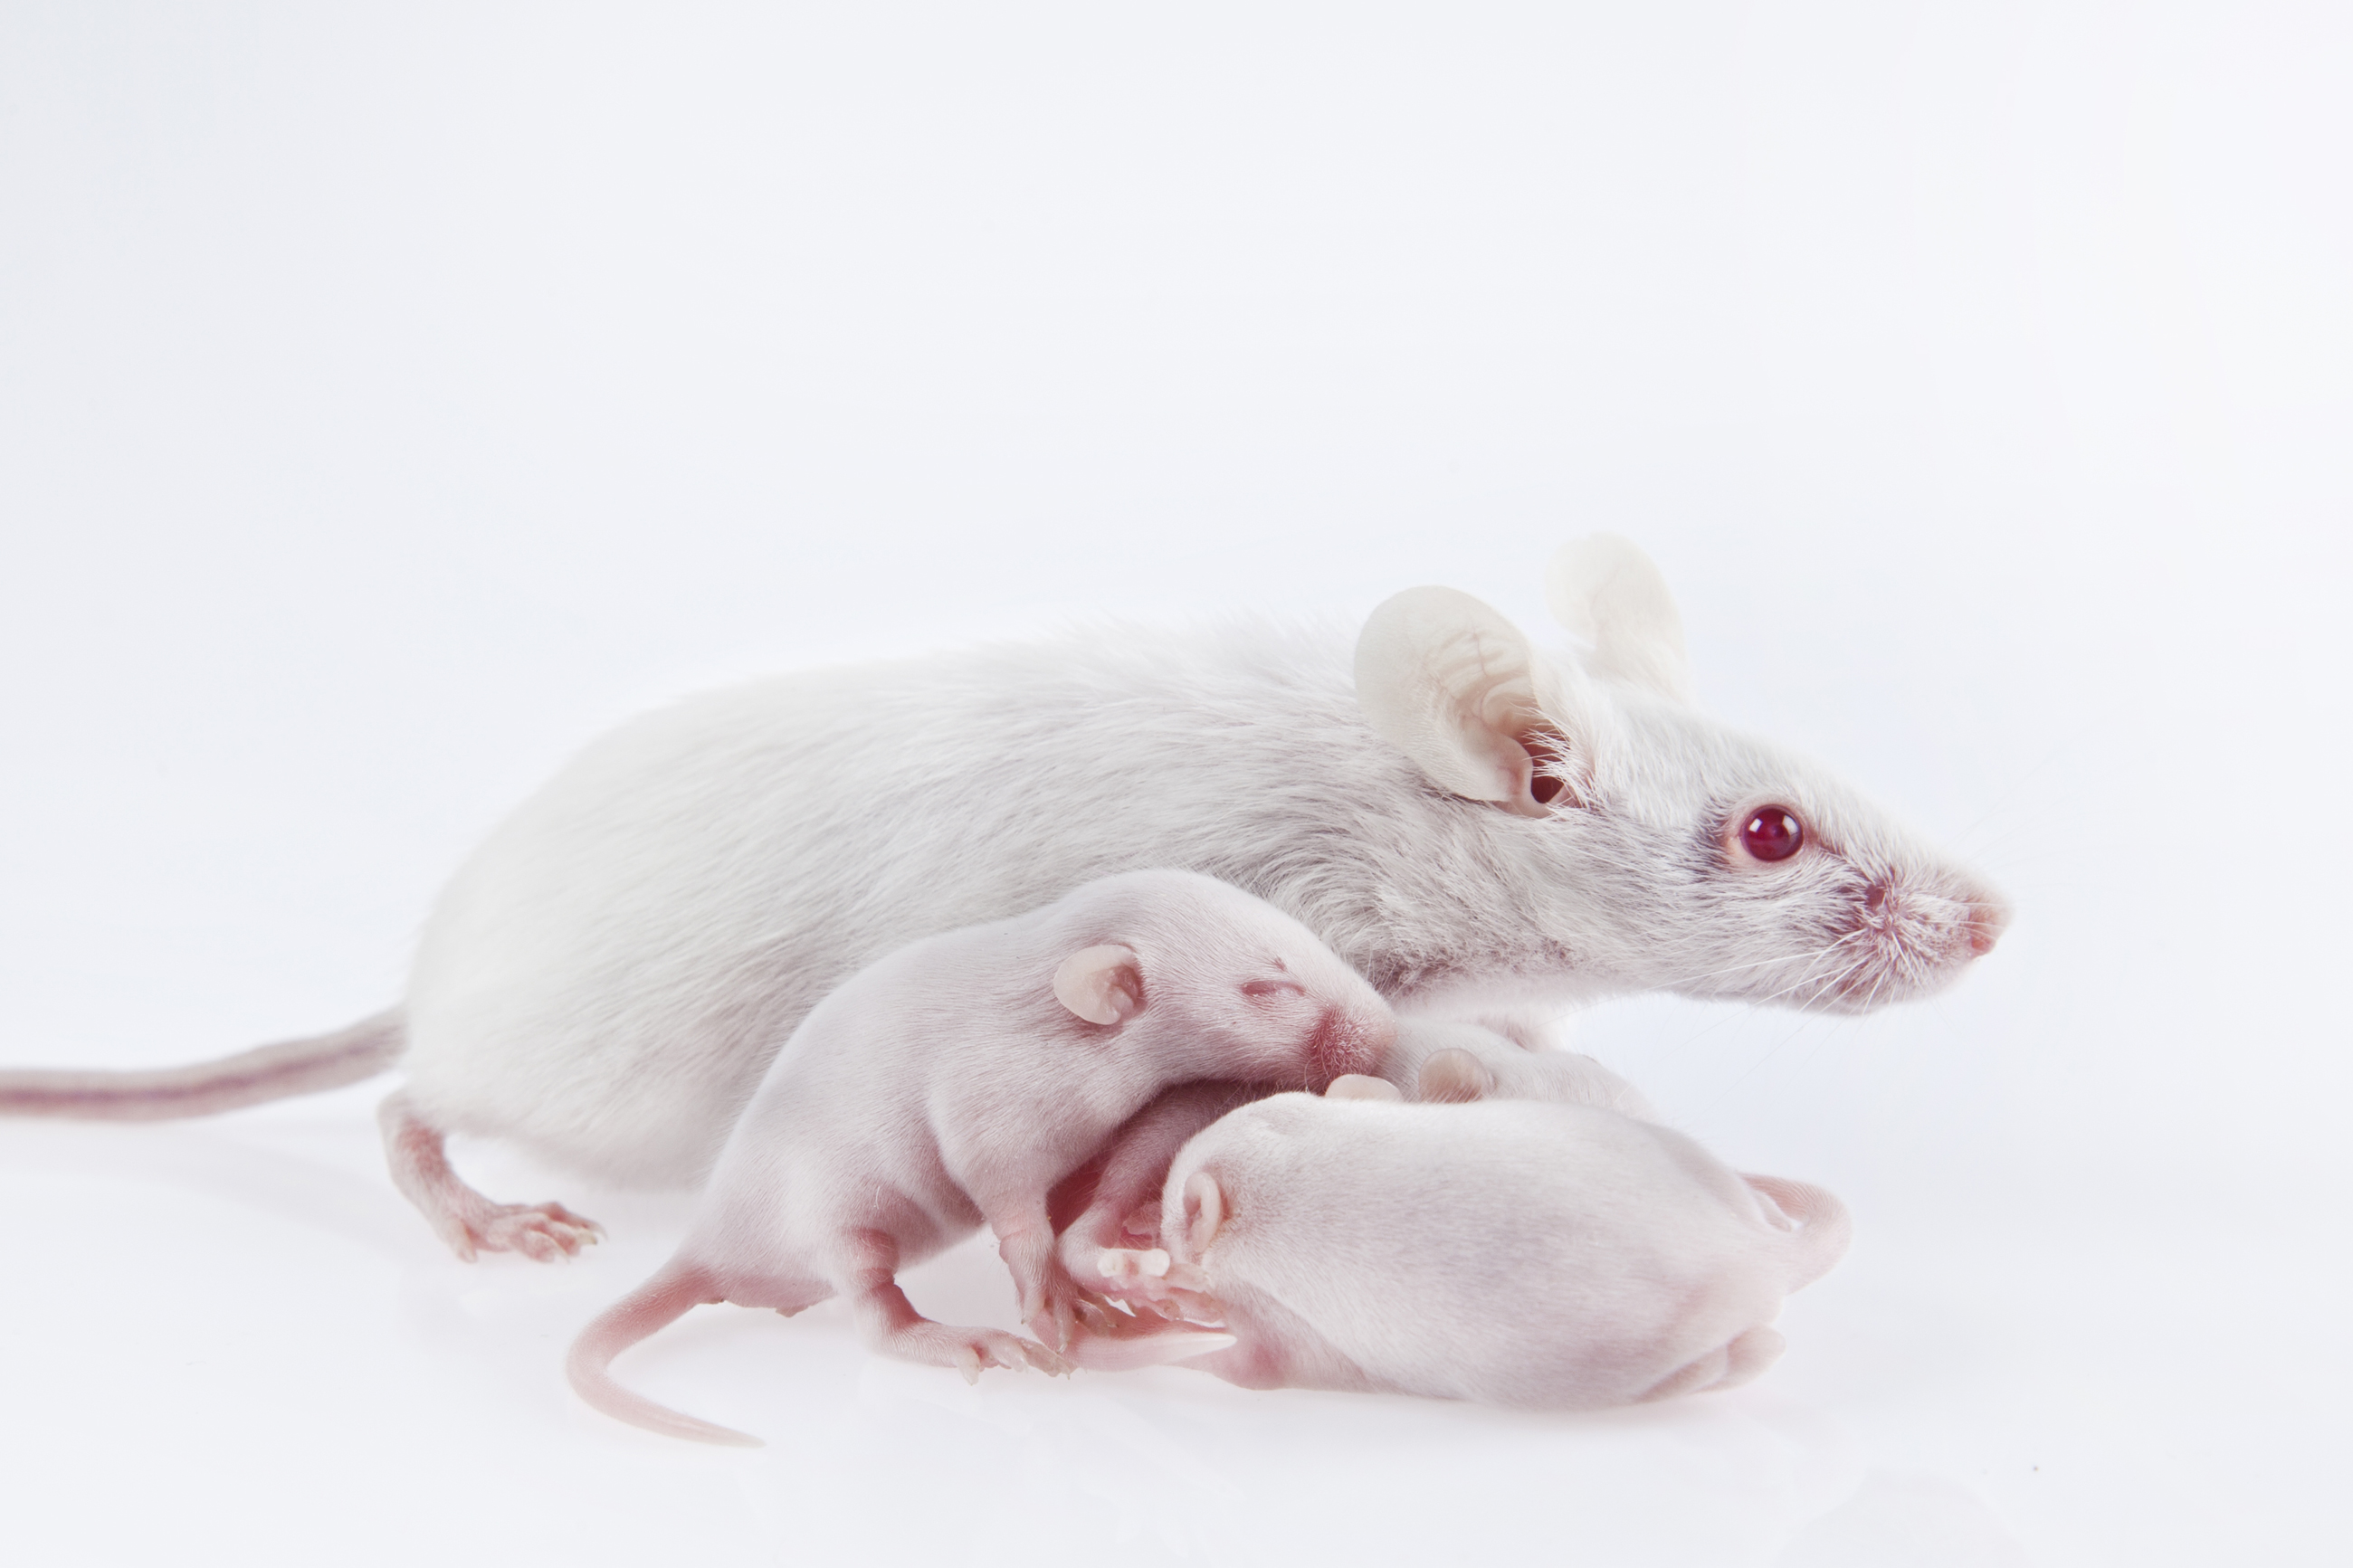 Photo of an adult mouse with two mouse pups.